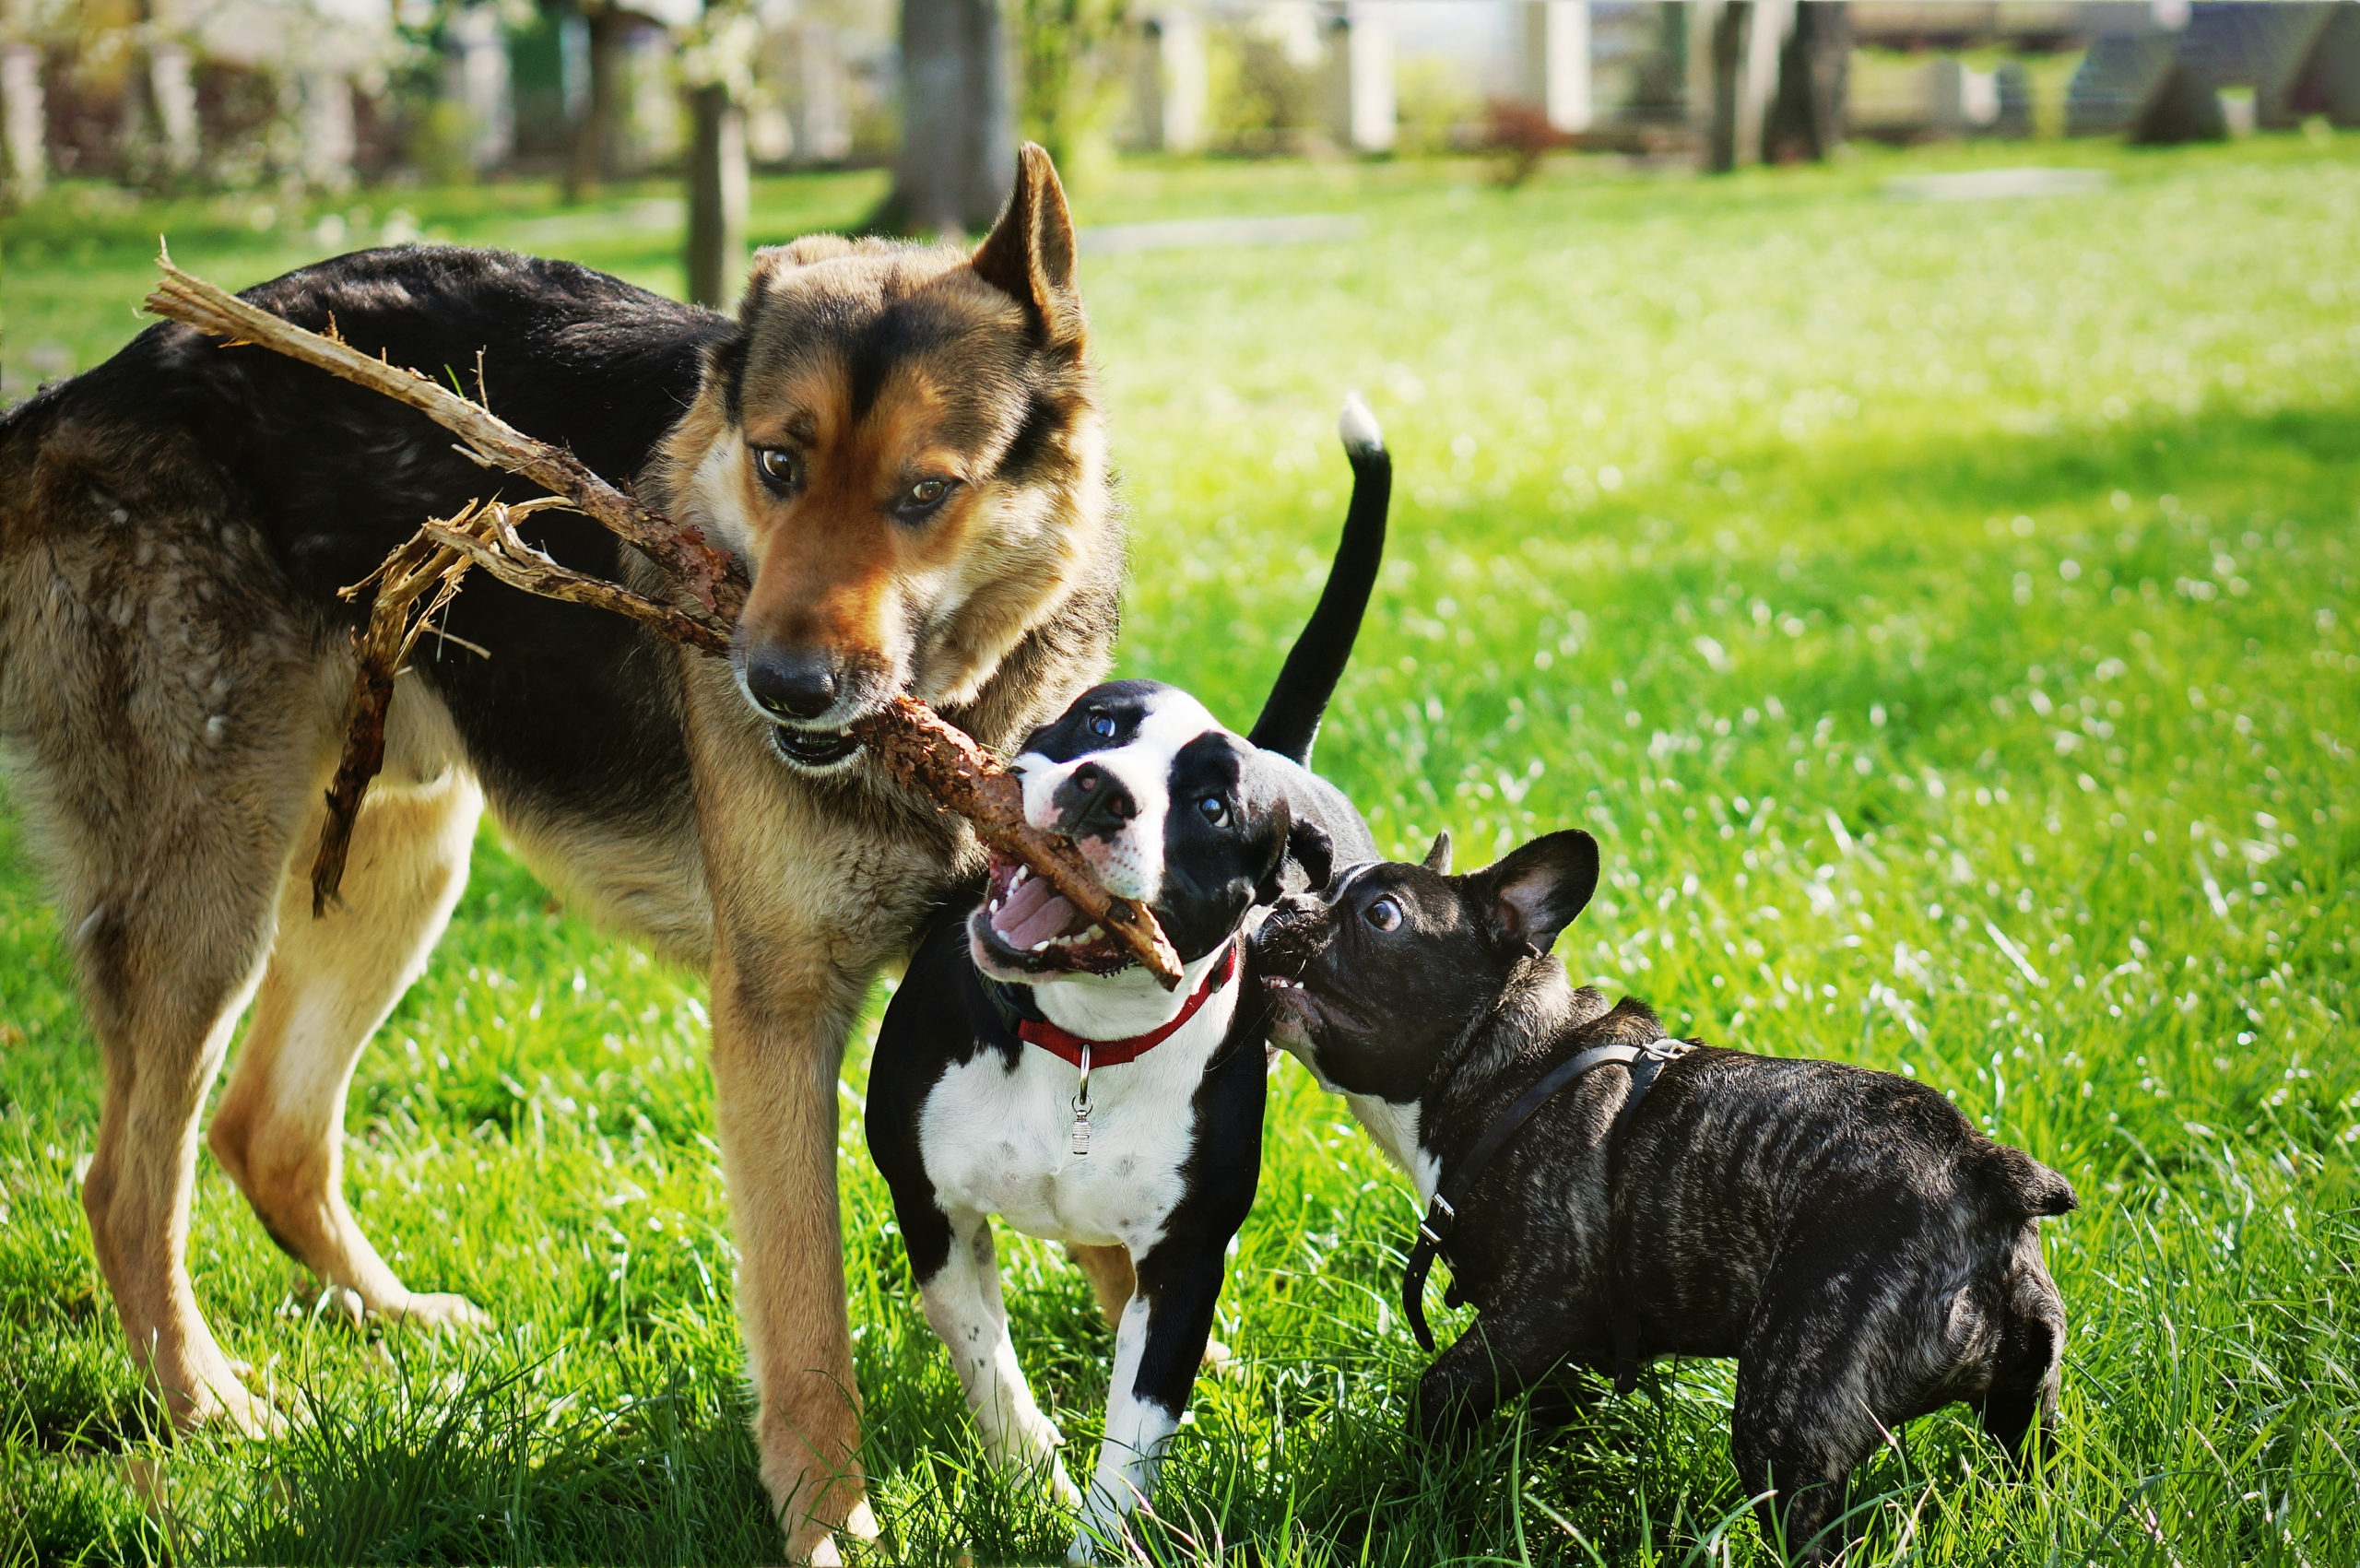 Three dogs are sharing a bone or fighting over it, much like the dynamics among project stakeholders.